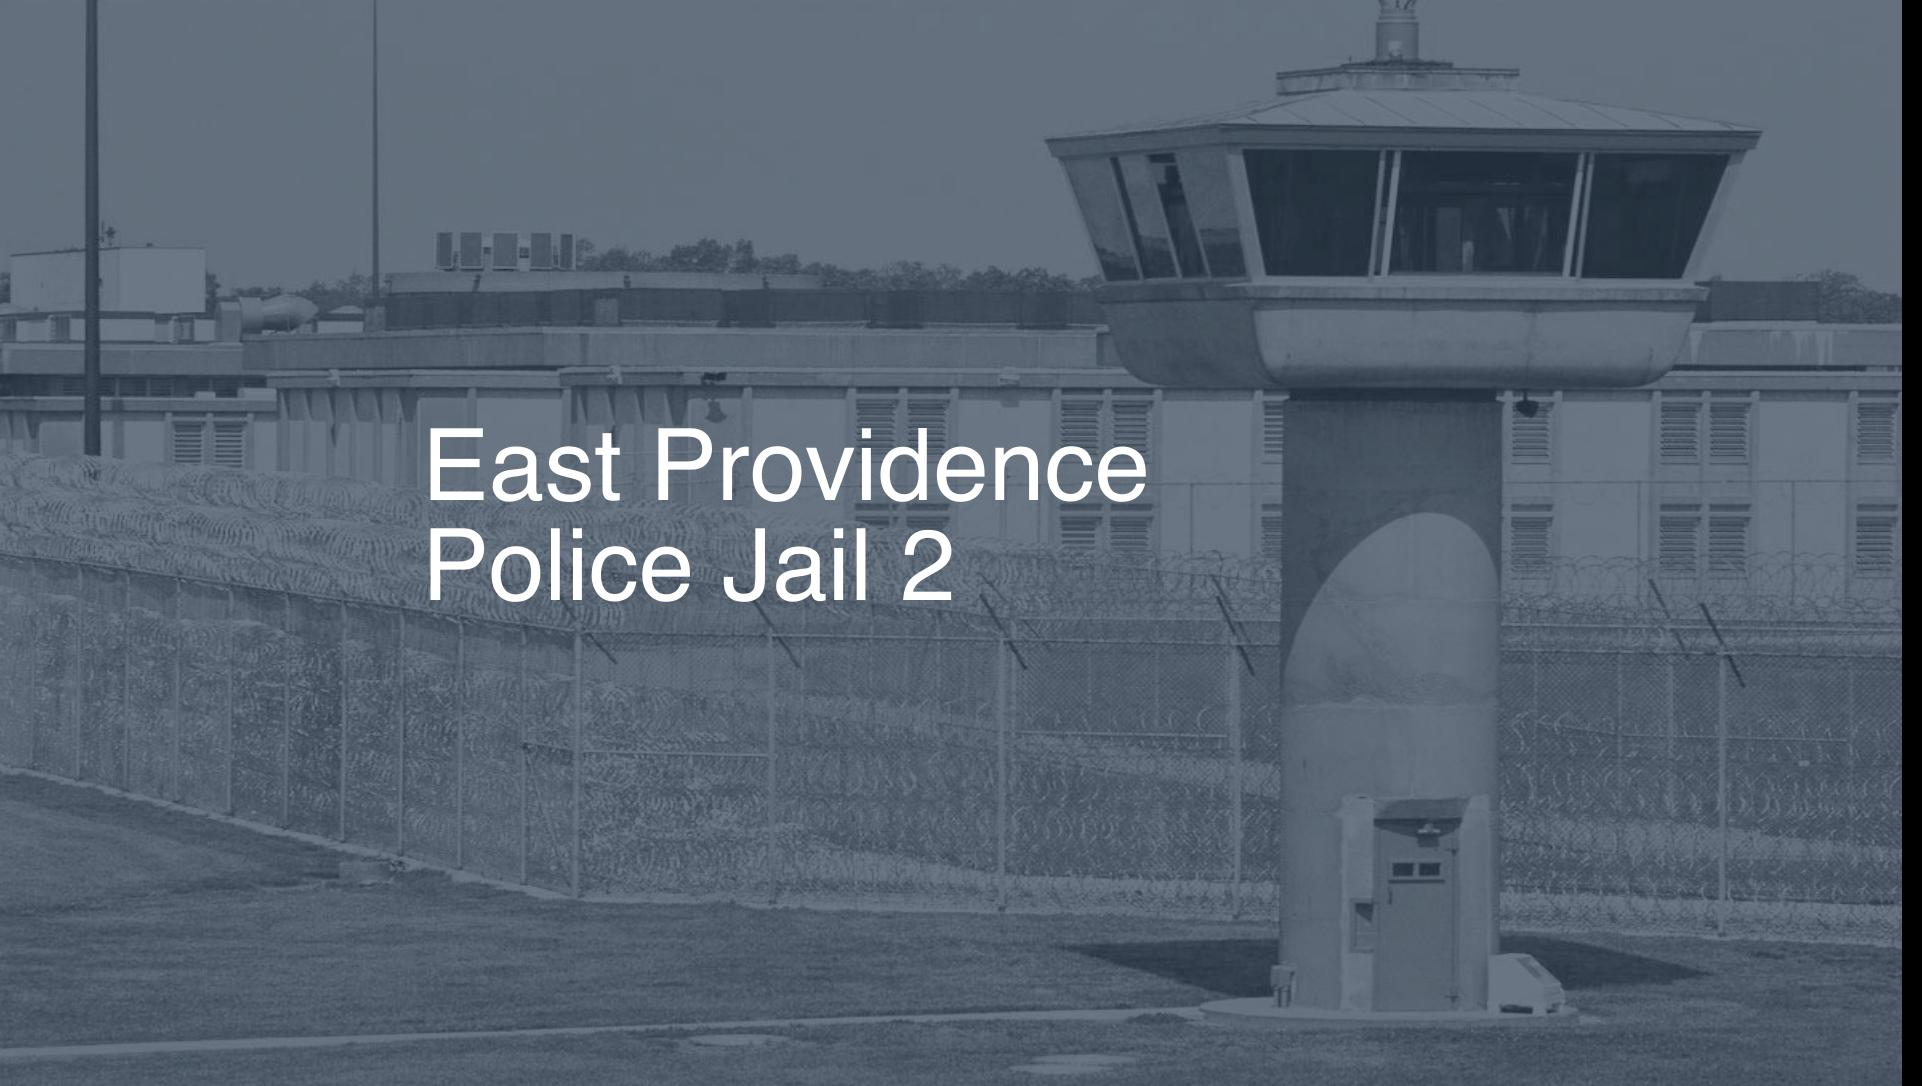 East Providence Police Jail correctional facility picture